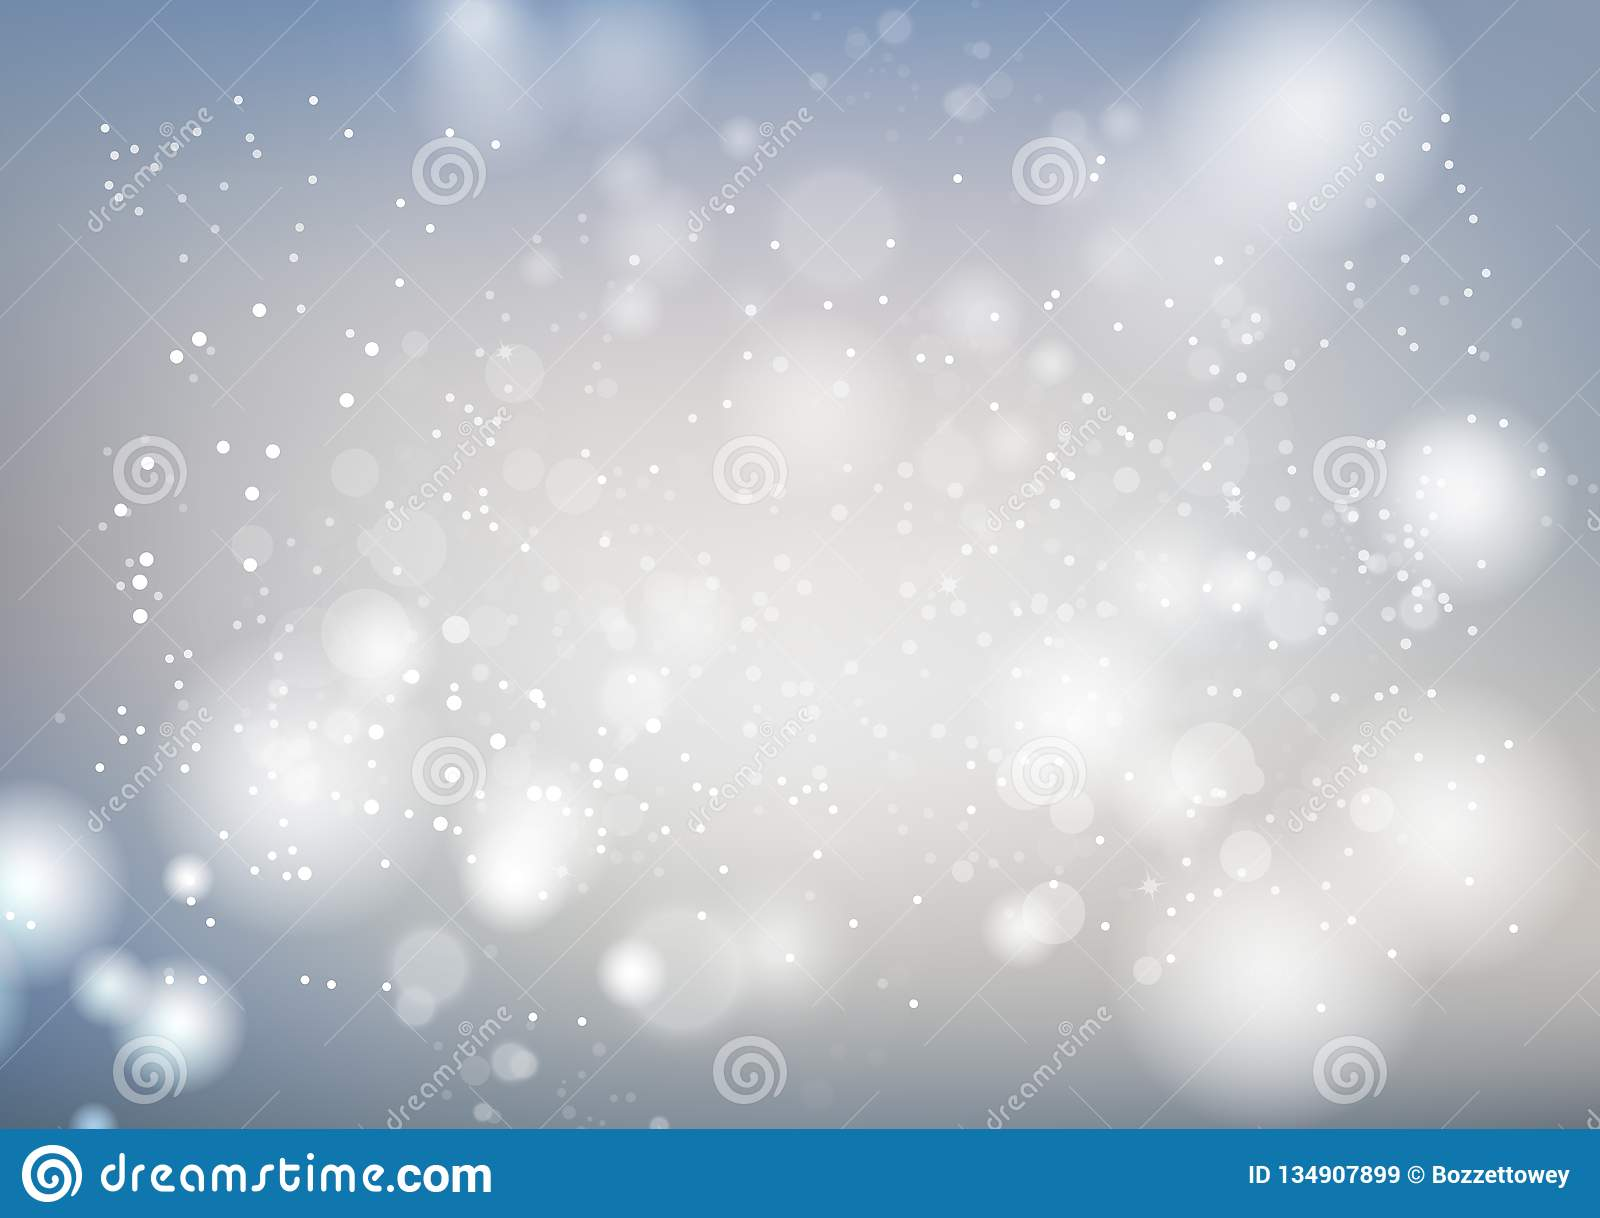 White, celebration abstract background, silver stars sparkle blur motion luxury vector illustration, seasonal holiday